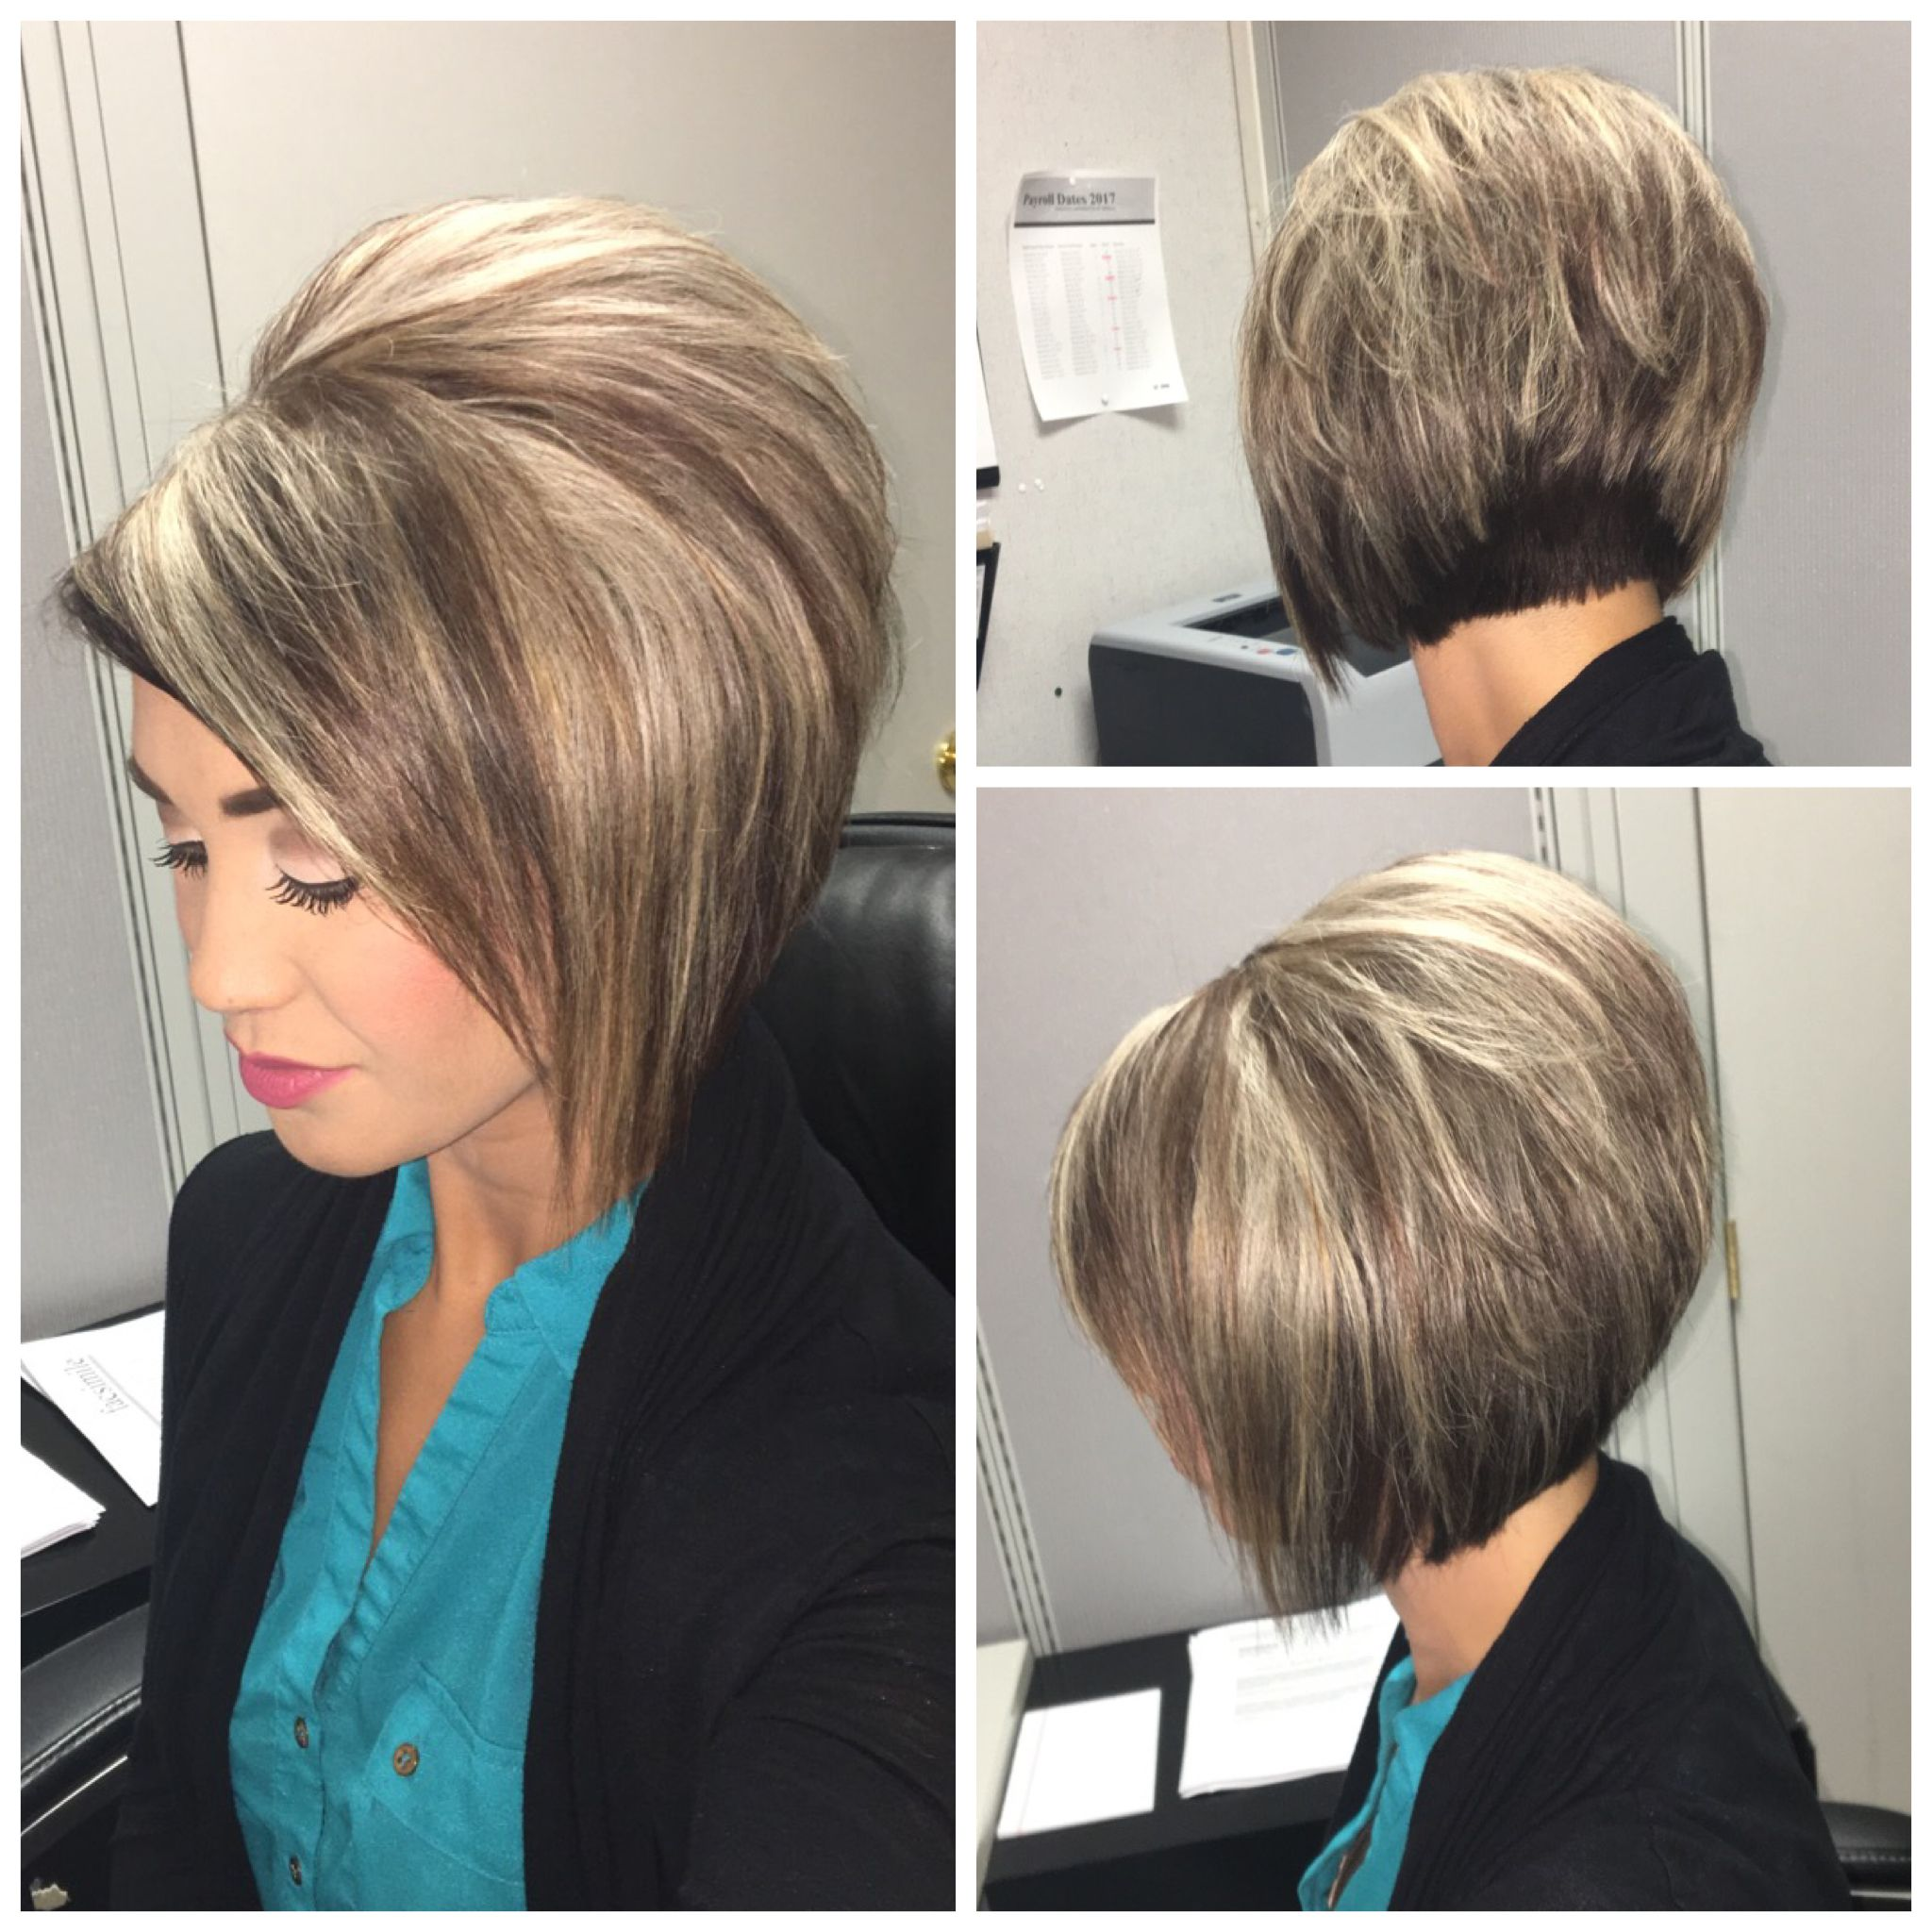 Stacked Bob Hairstyle Glamorous Stacked Bob Haircut With Blonde Highlights On Dark Hair  Hair